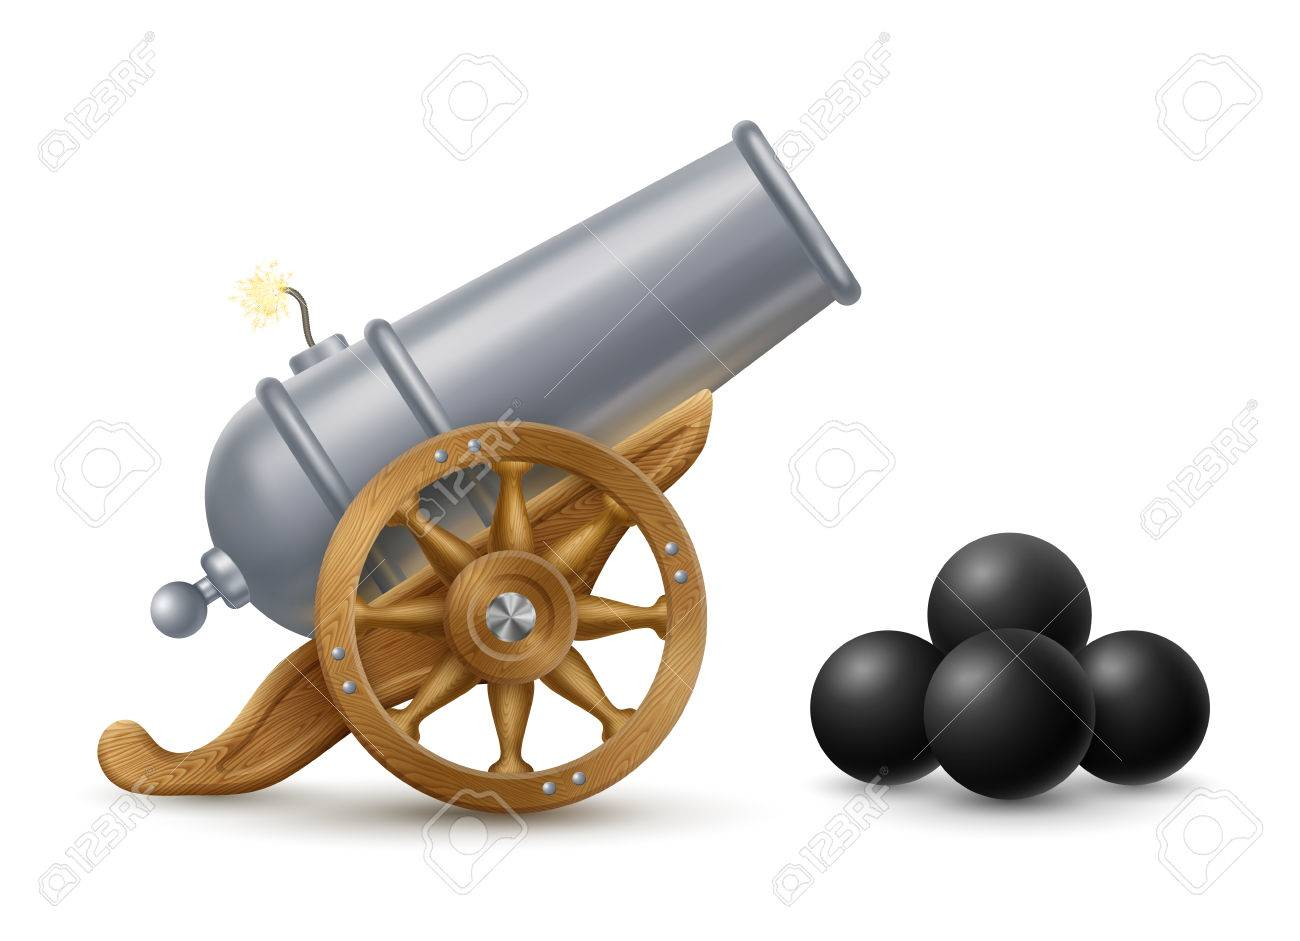 cartoon illustration of cannon with cannonballs, weapon icon